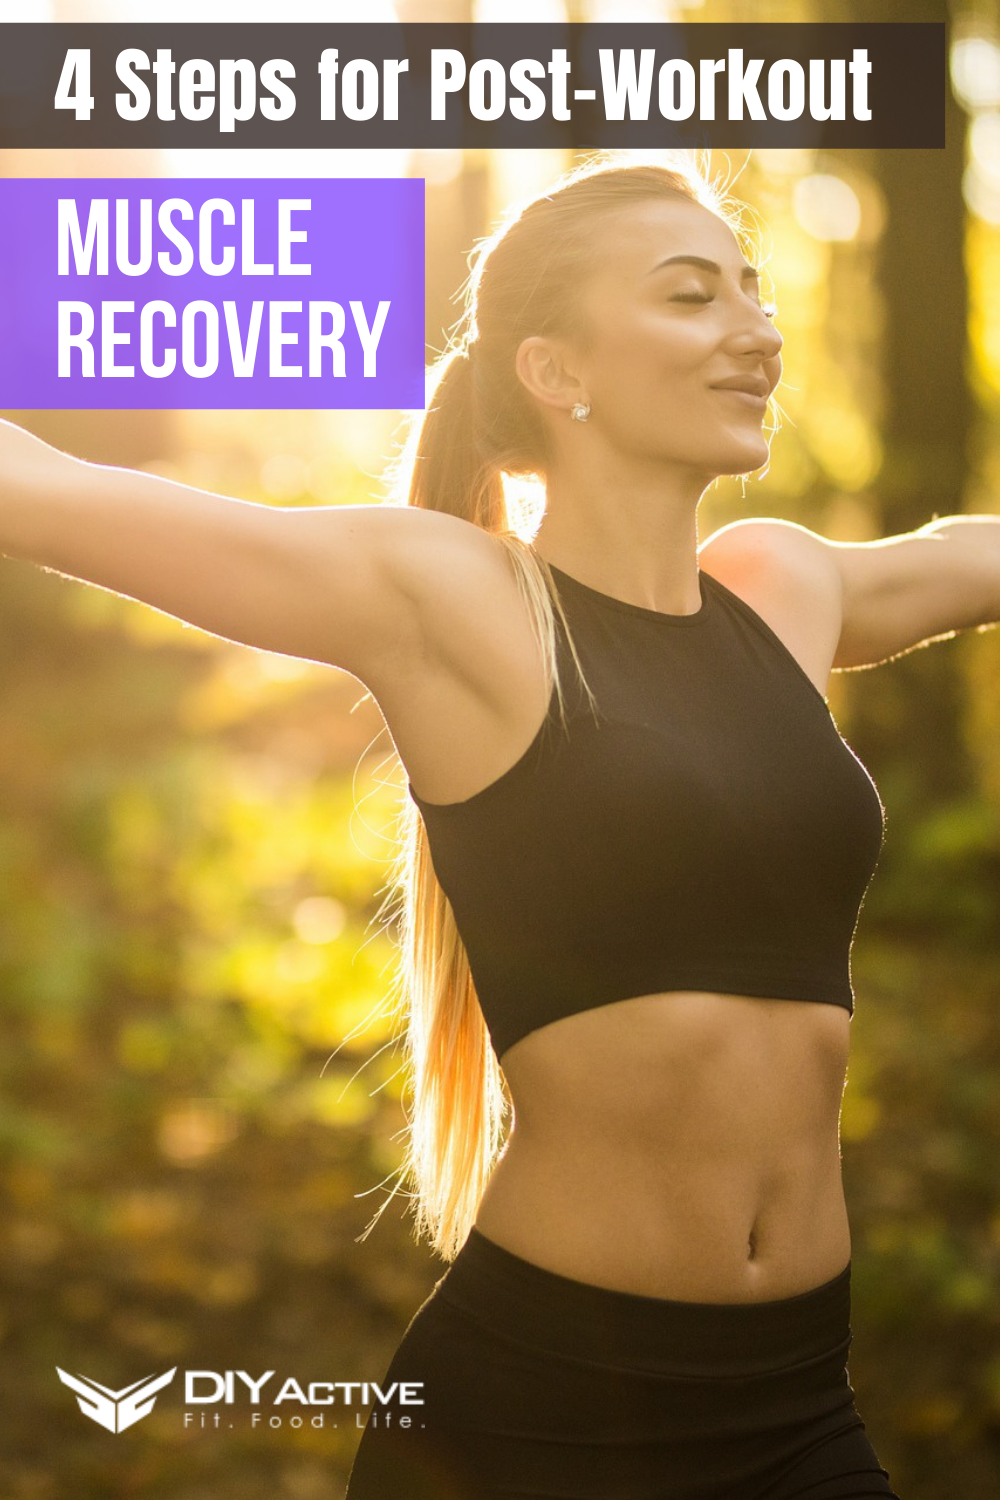 4 Steps for Effective Post-Workout Muscle Recovery